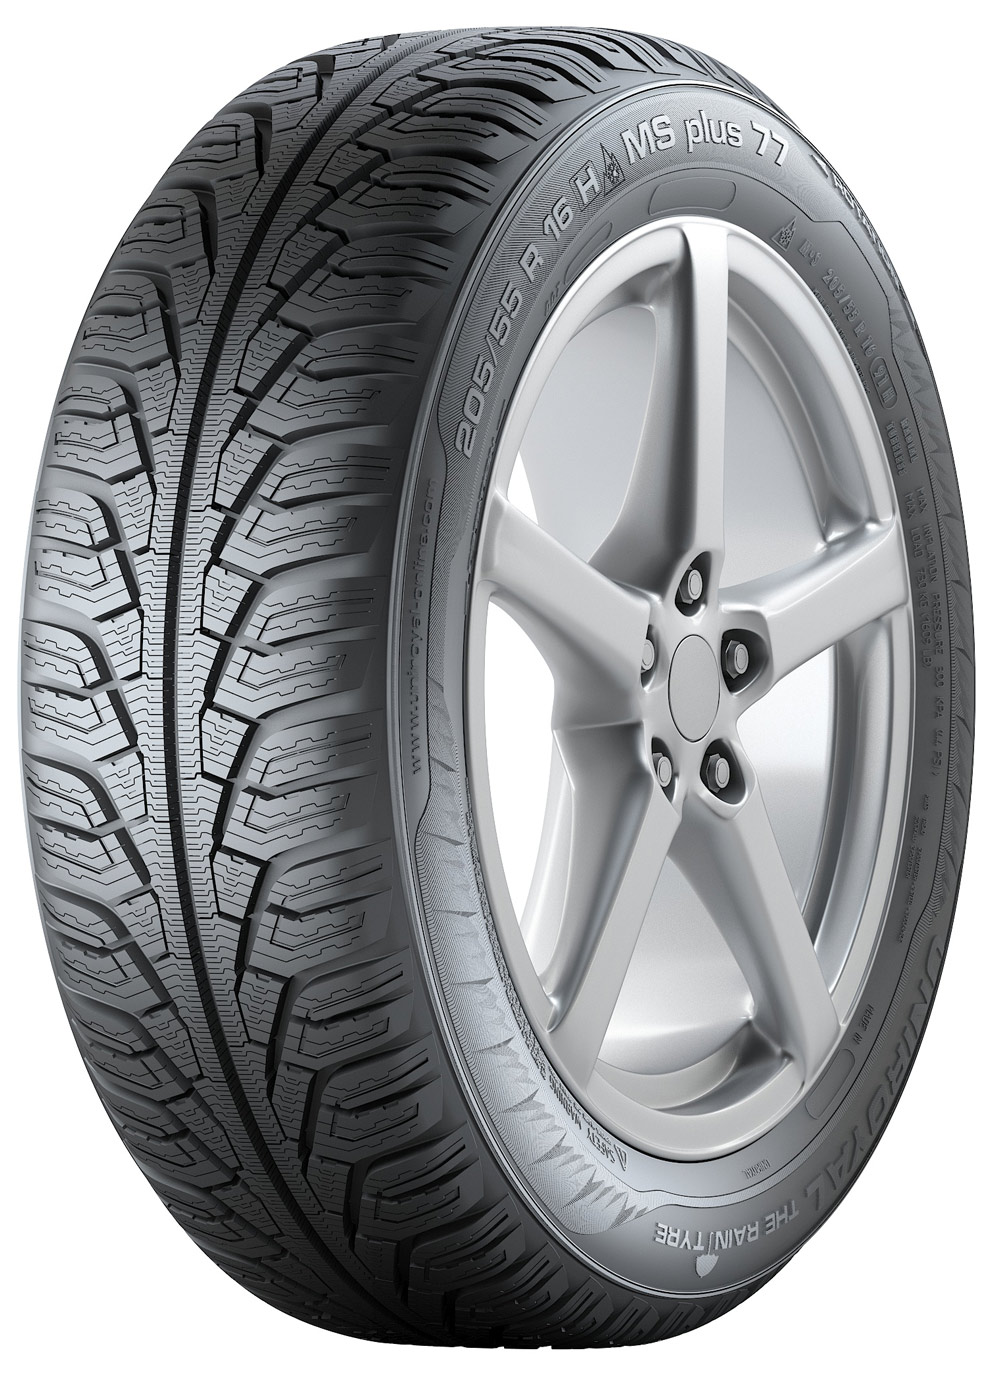 Uniroyal MS Plus 77 175/70 R14 84T